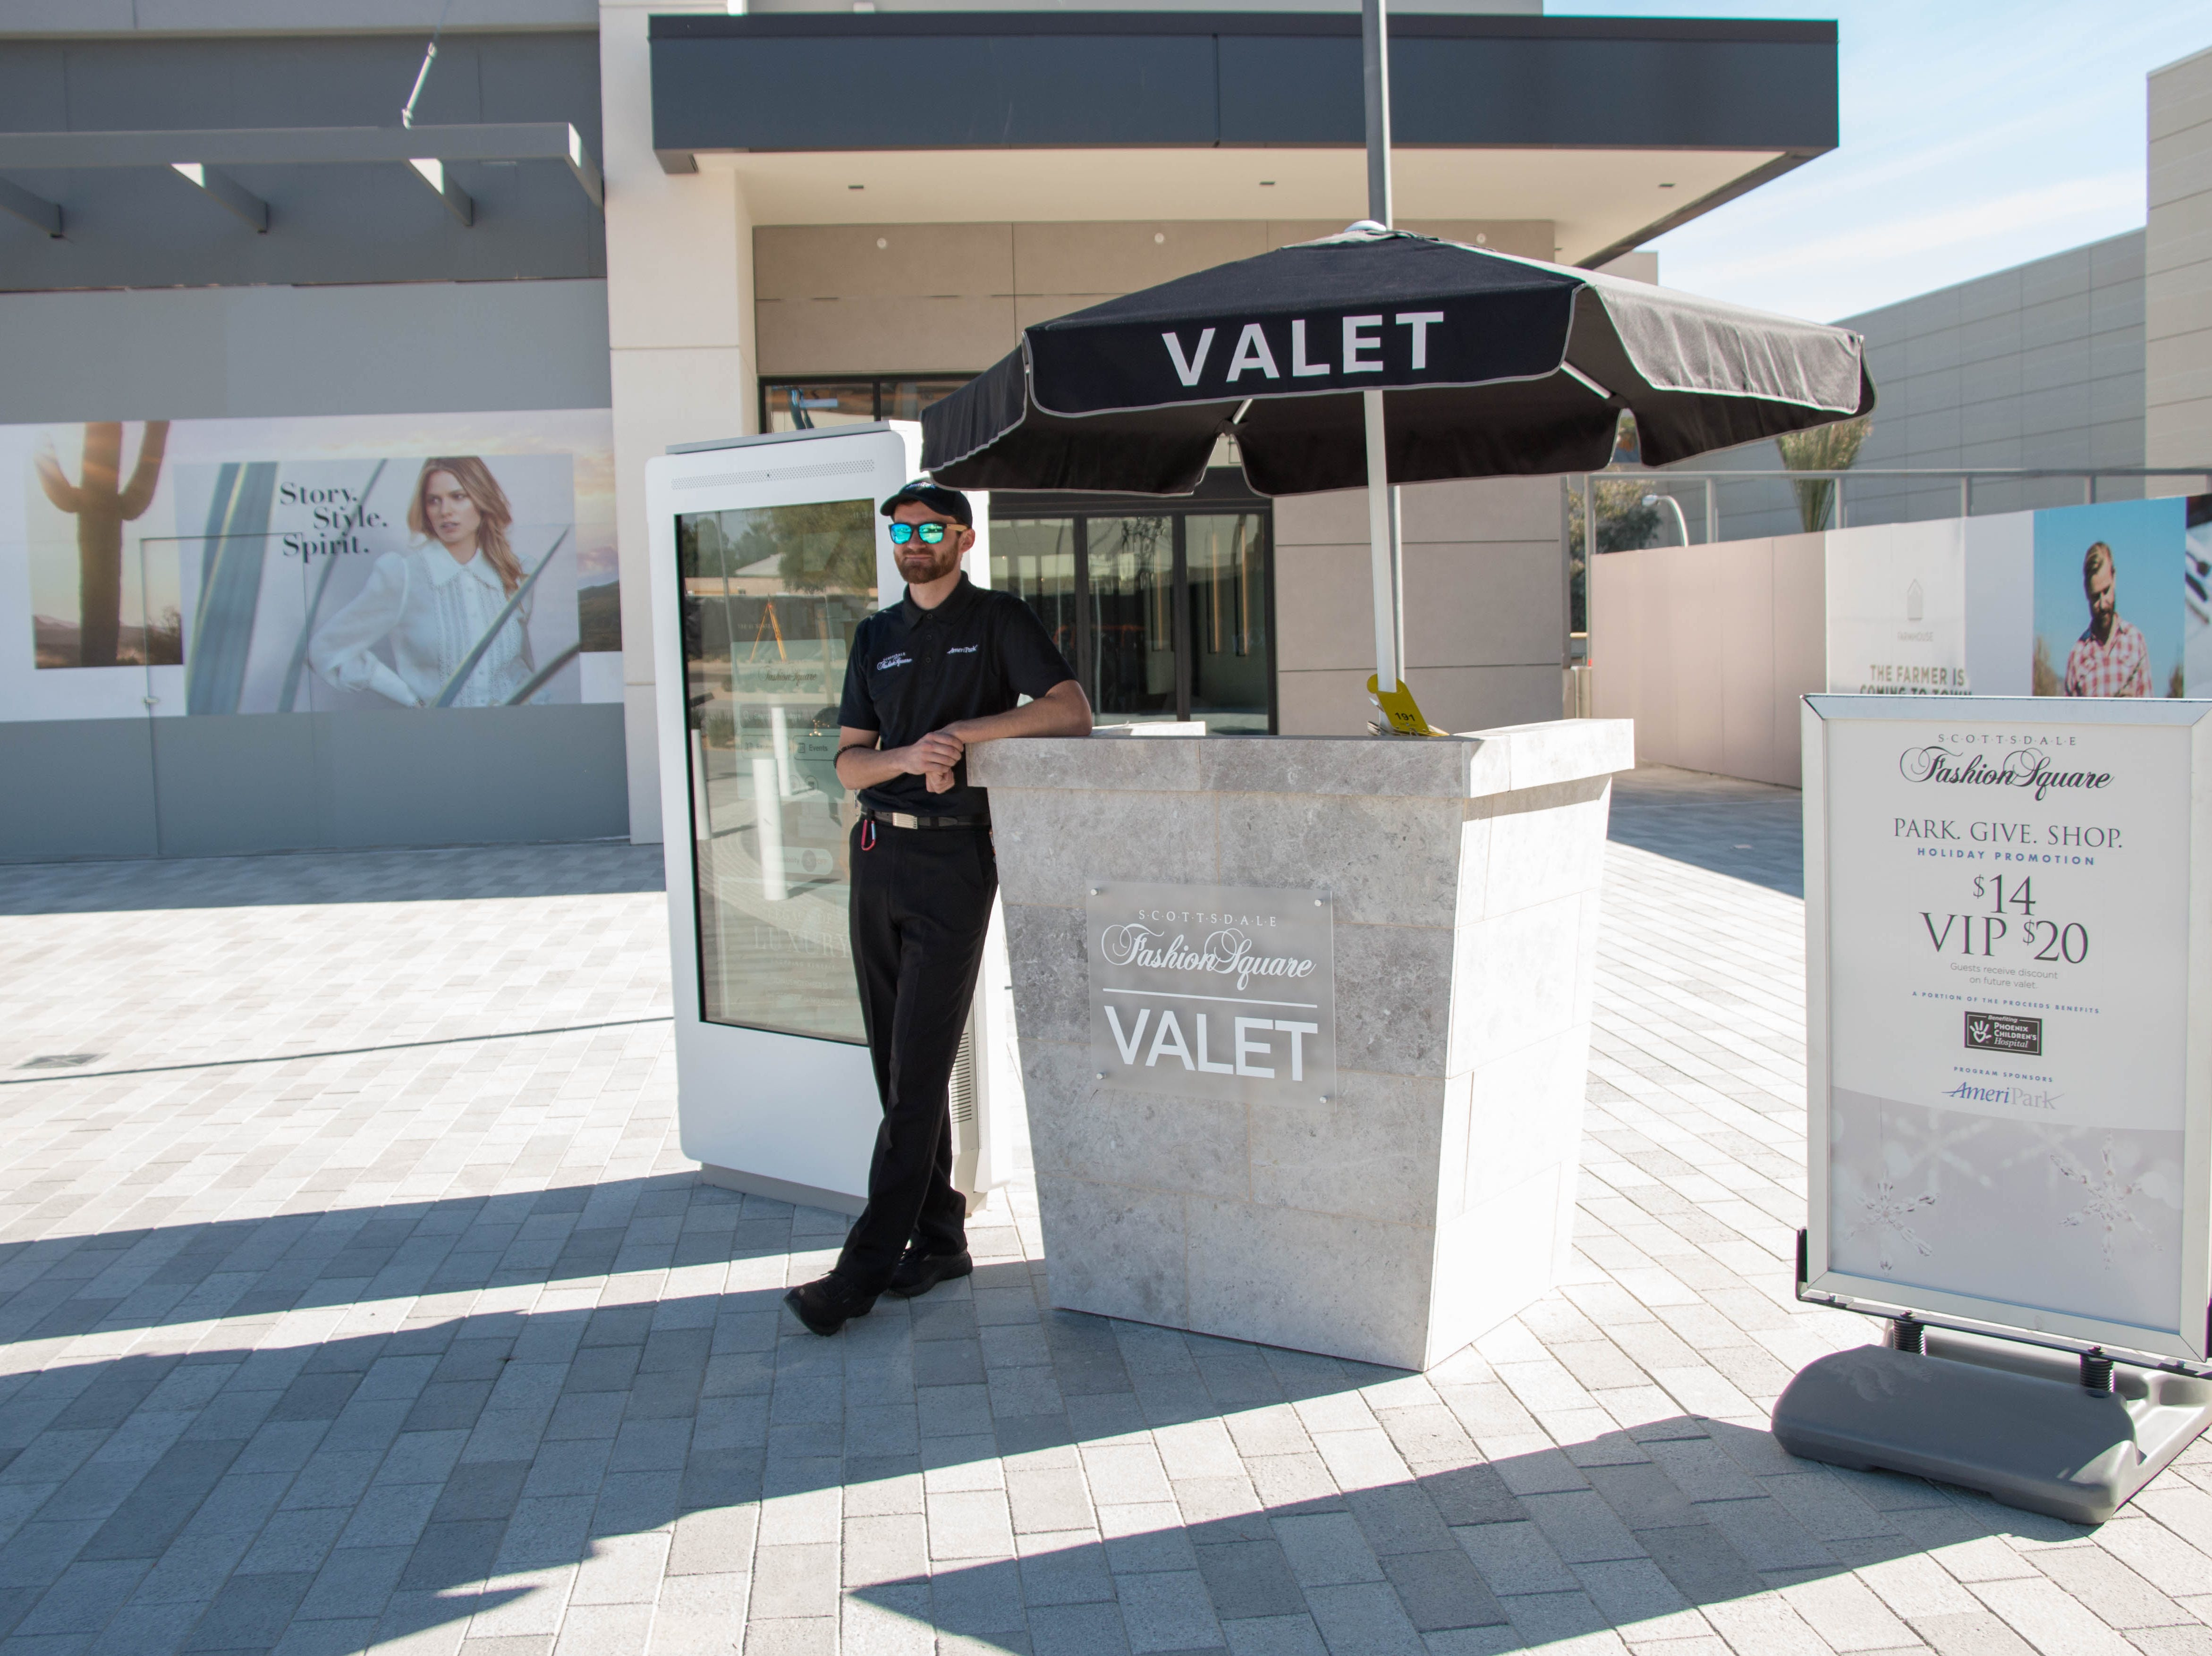 The mall's new entrance also features a new valet stand and customer lounge.